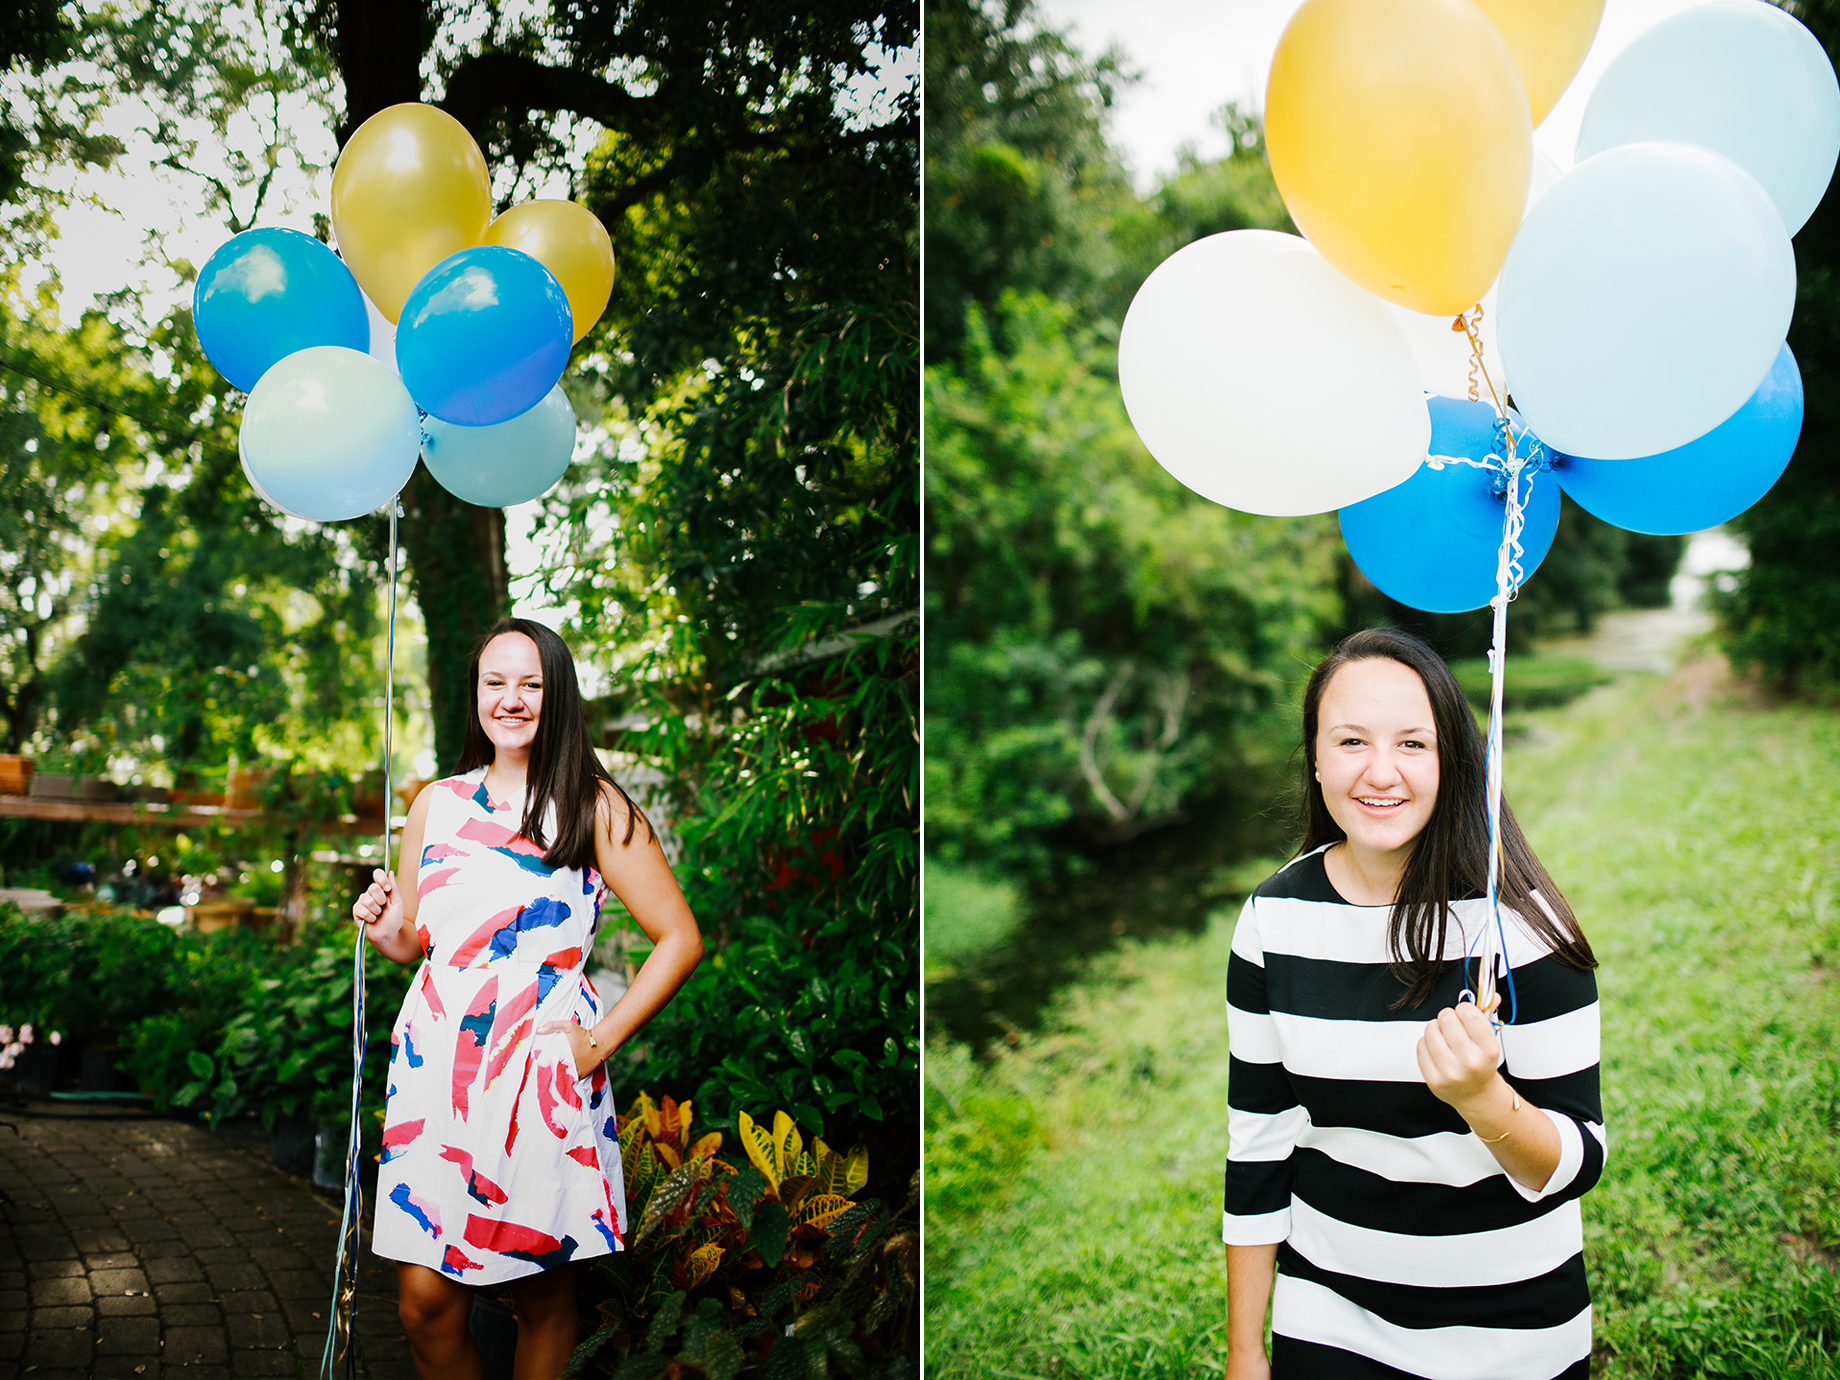 senior portraits balloons winter park florida gardens sunlight bright.jpg